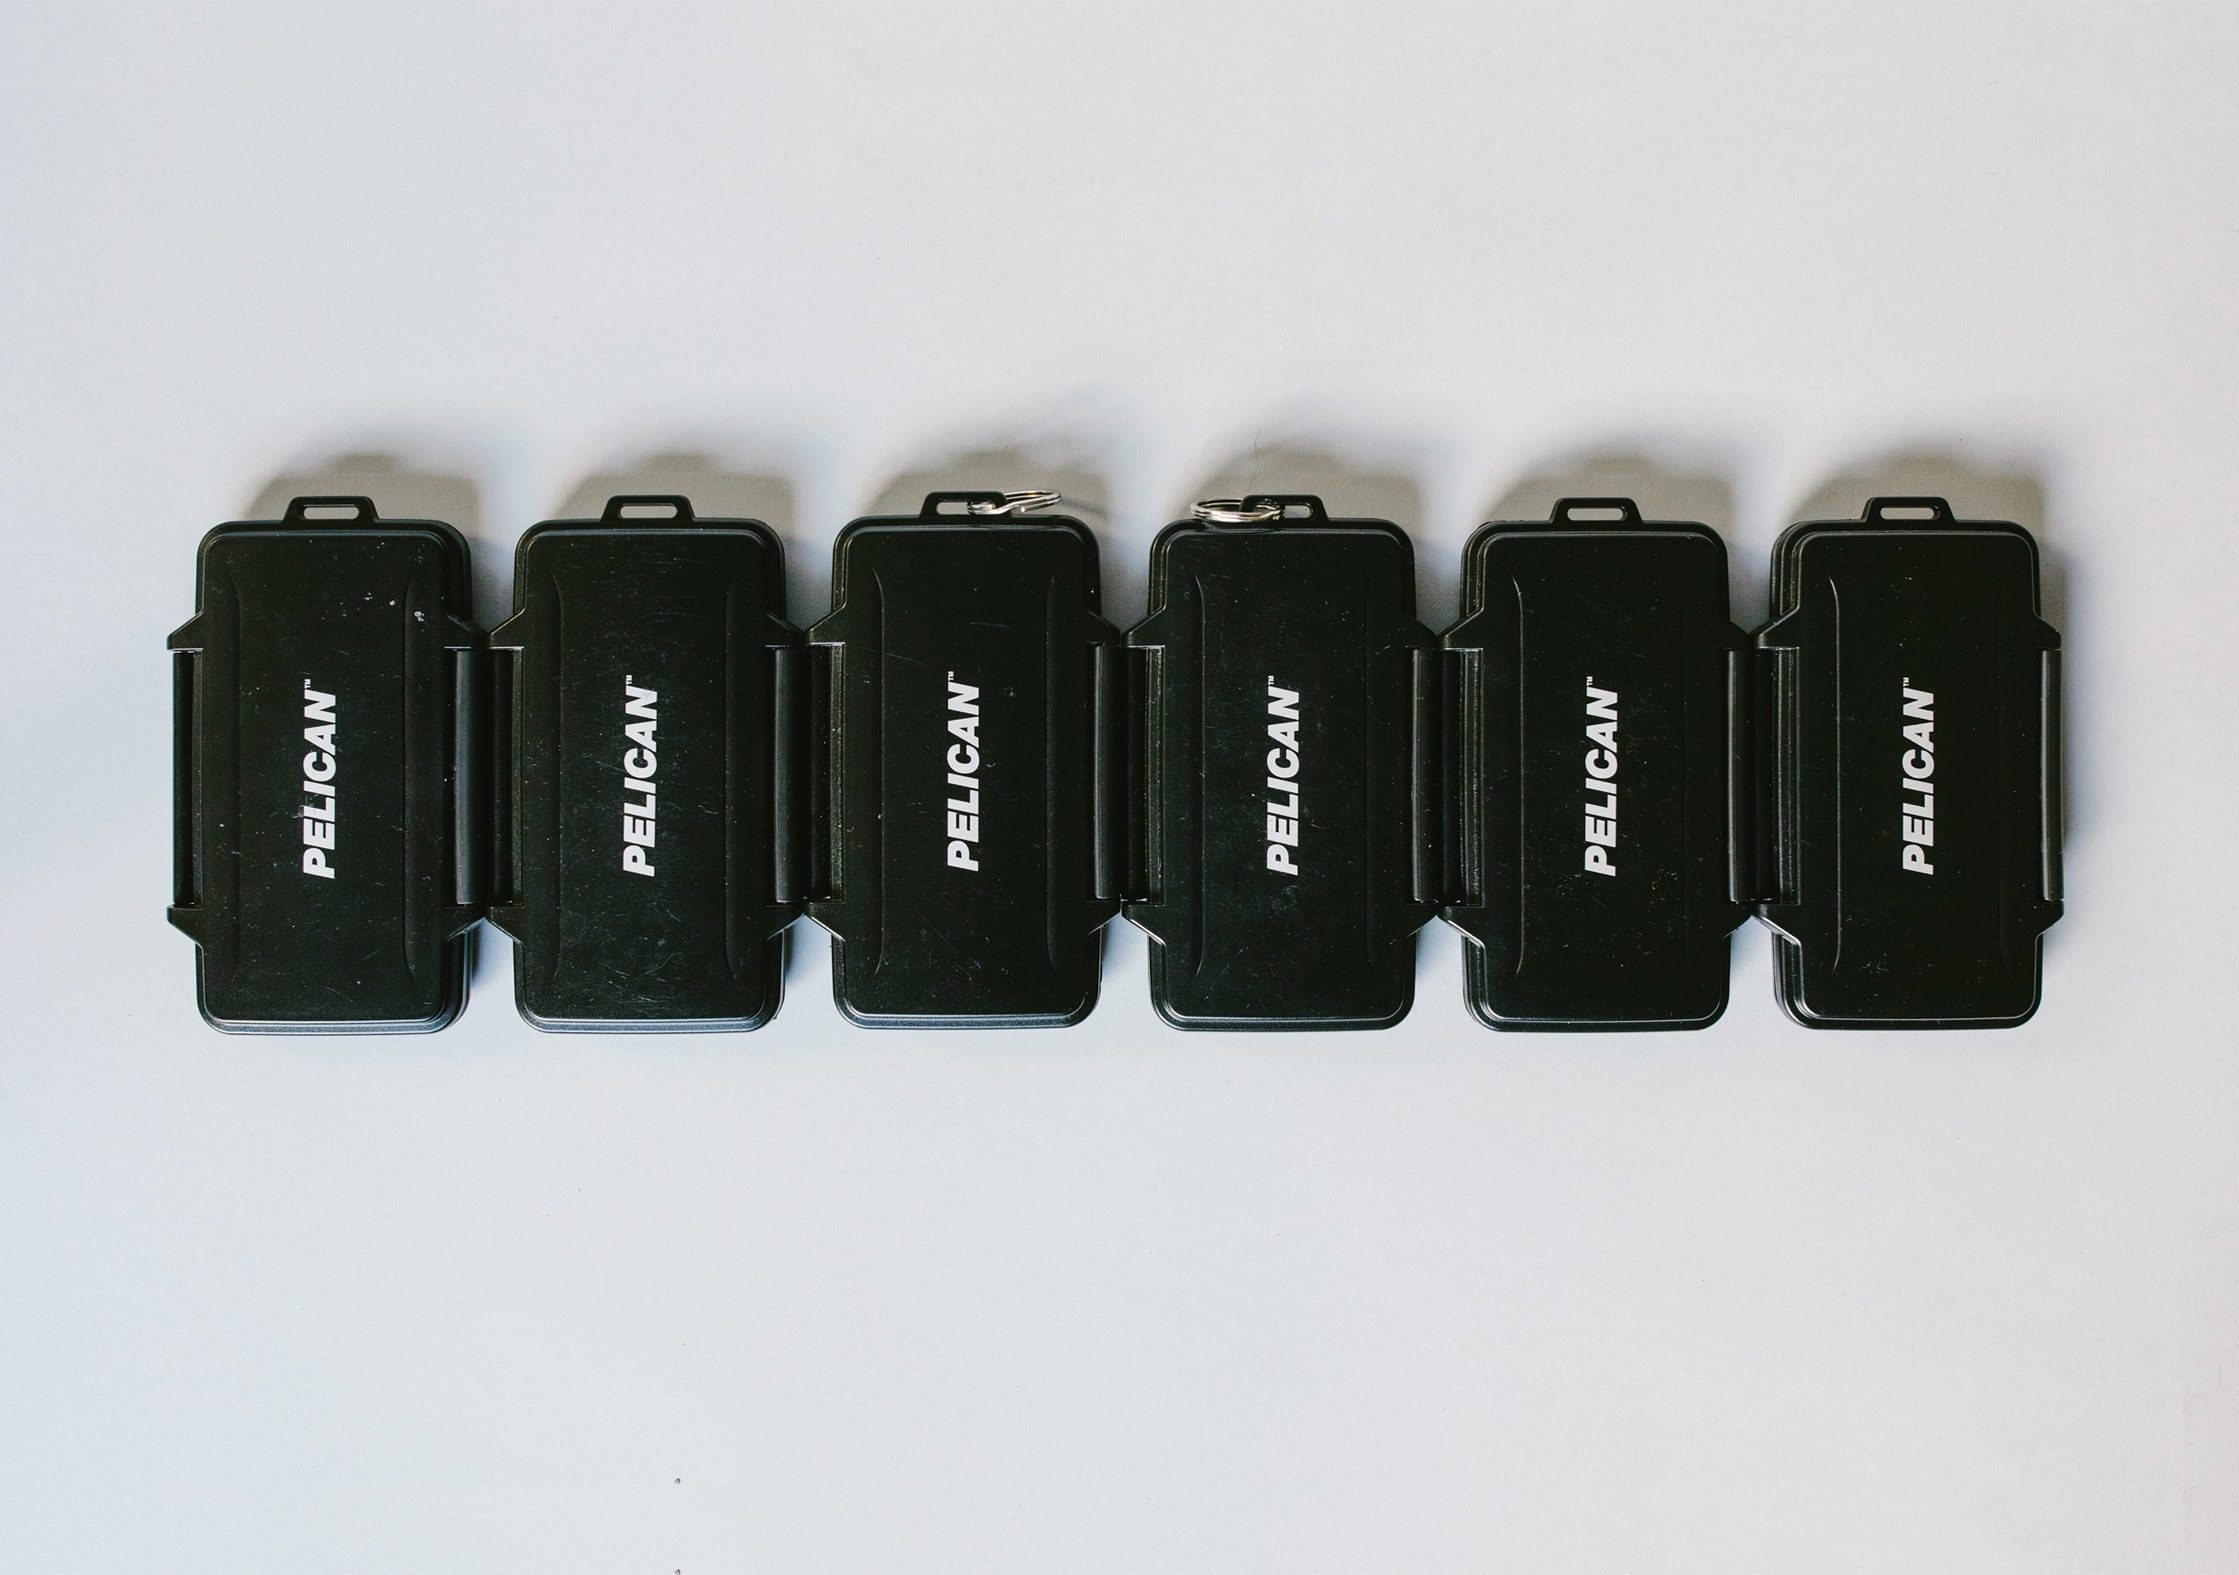 Pelican Memory Card Cases - 6 in a row